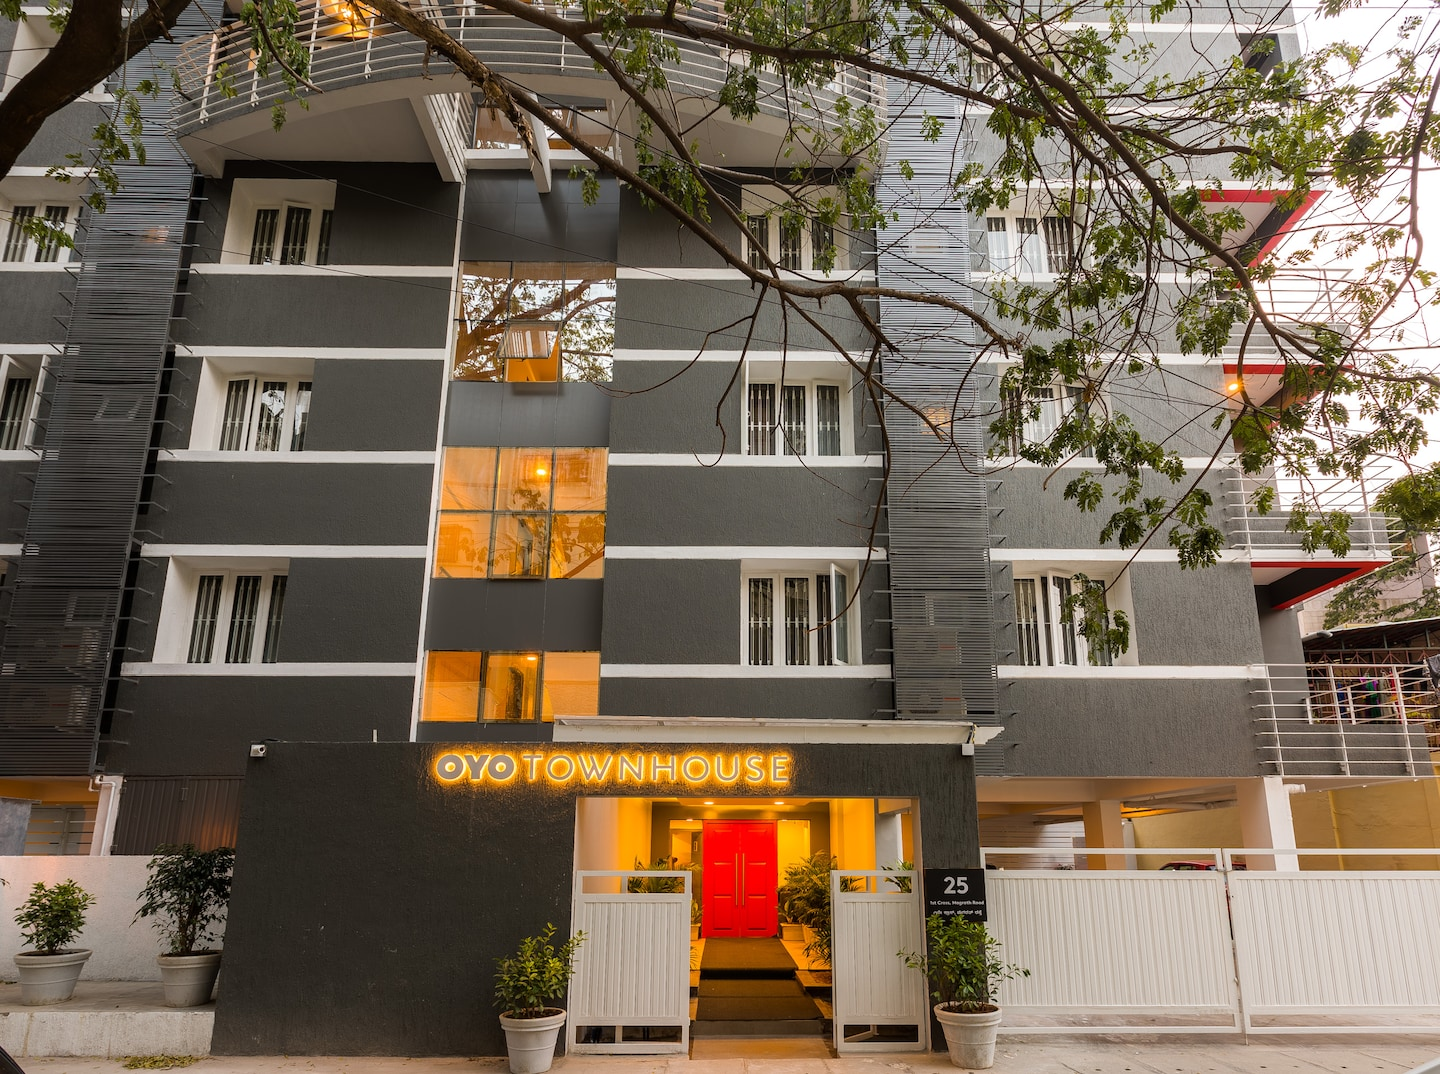 OYO Townhouse 025 Garuda Mall Bangalore -1